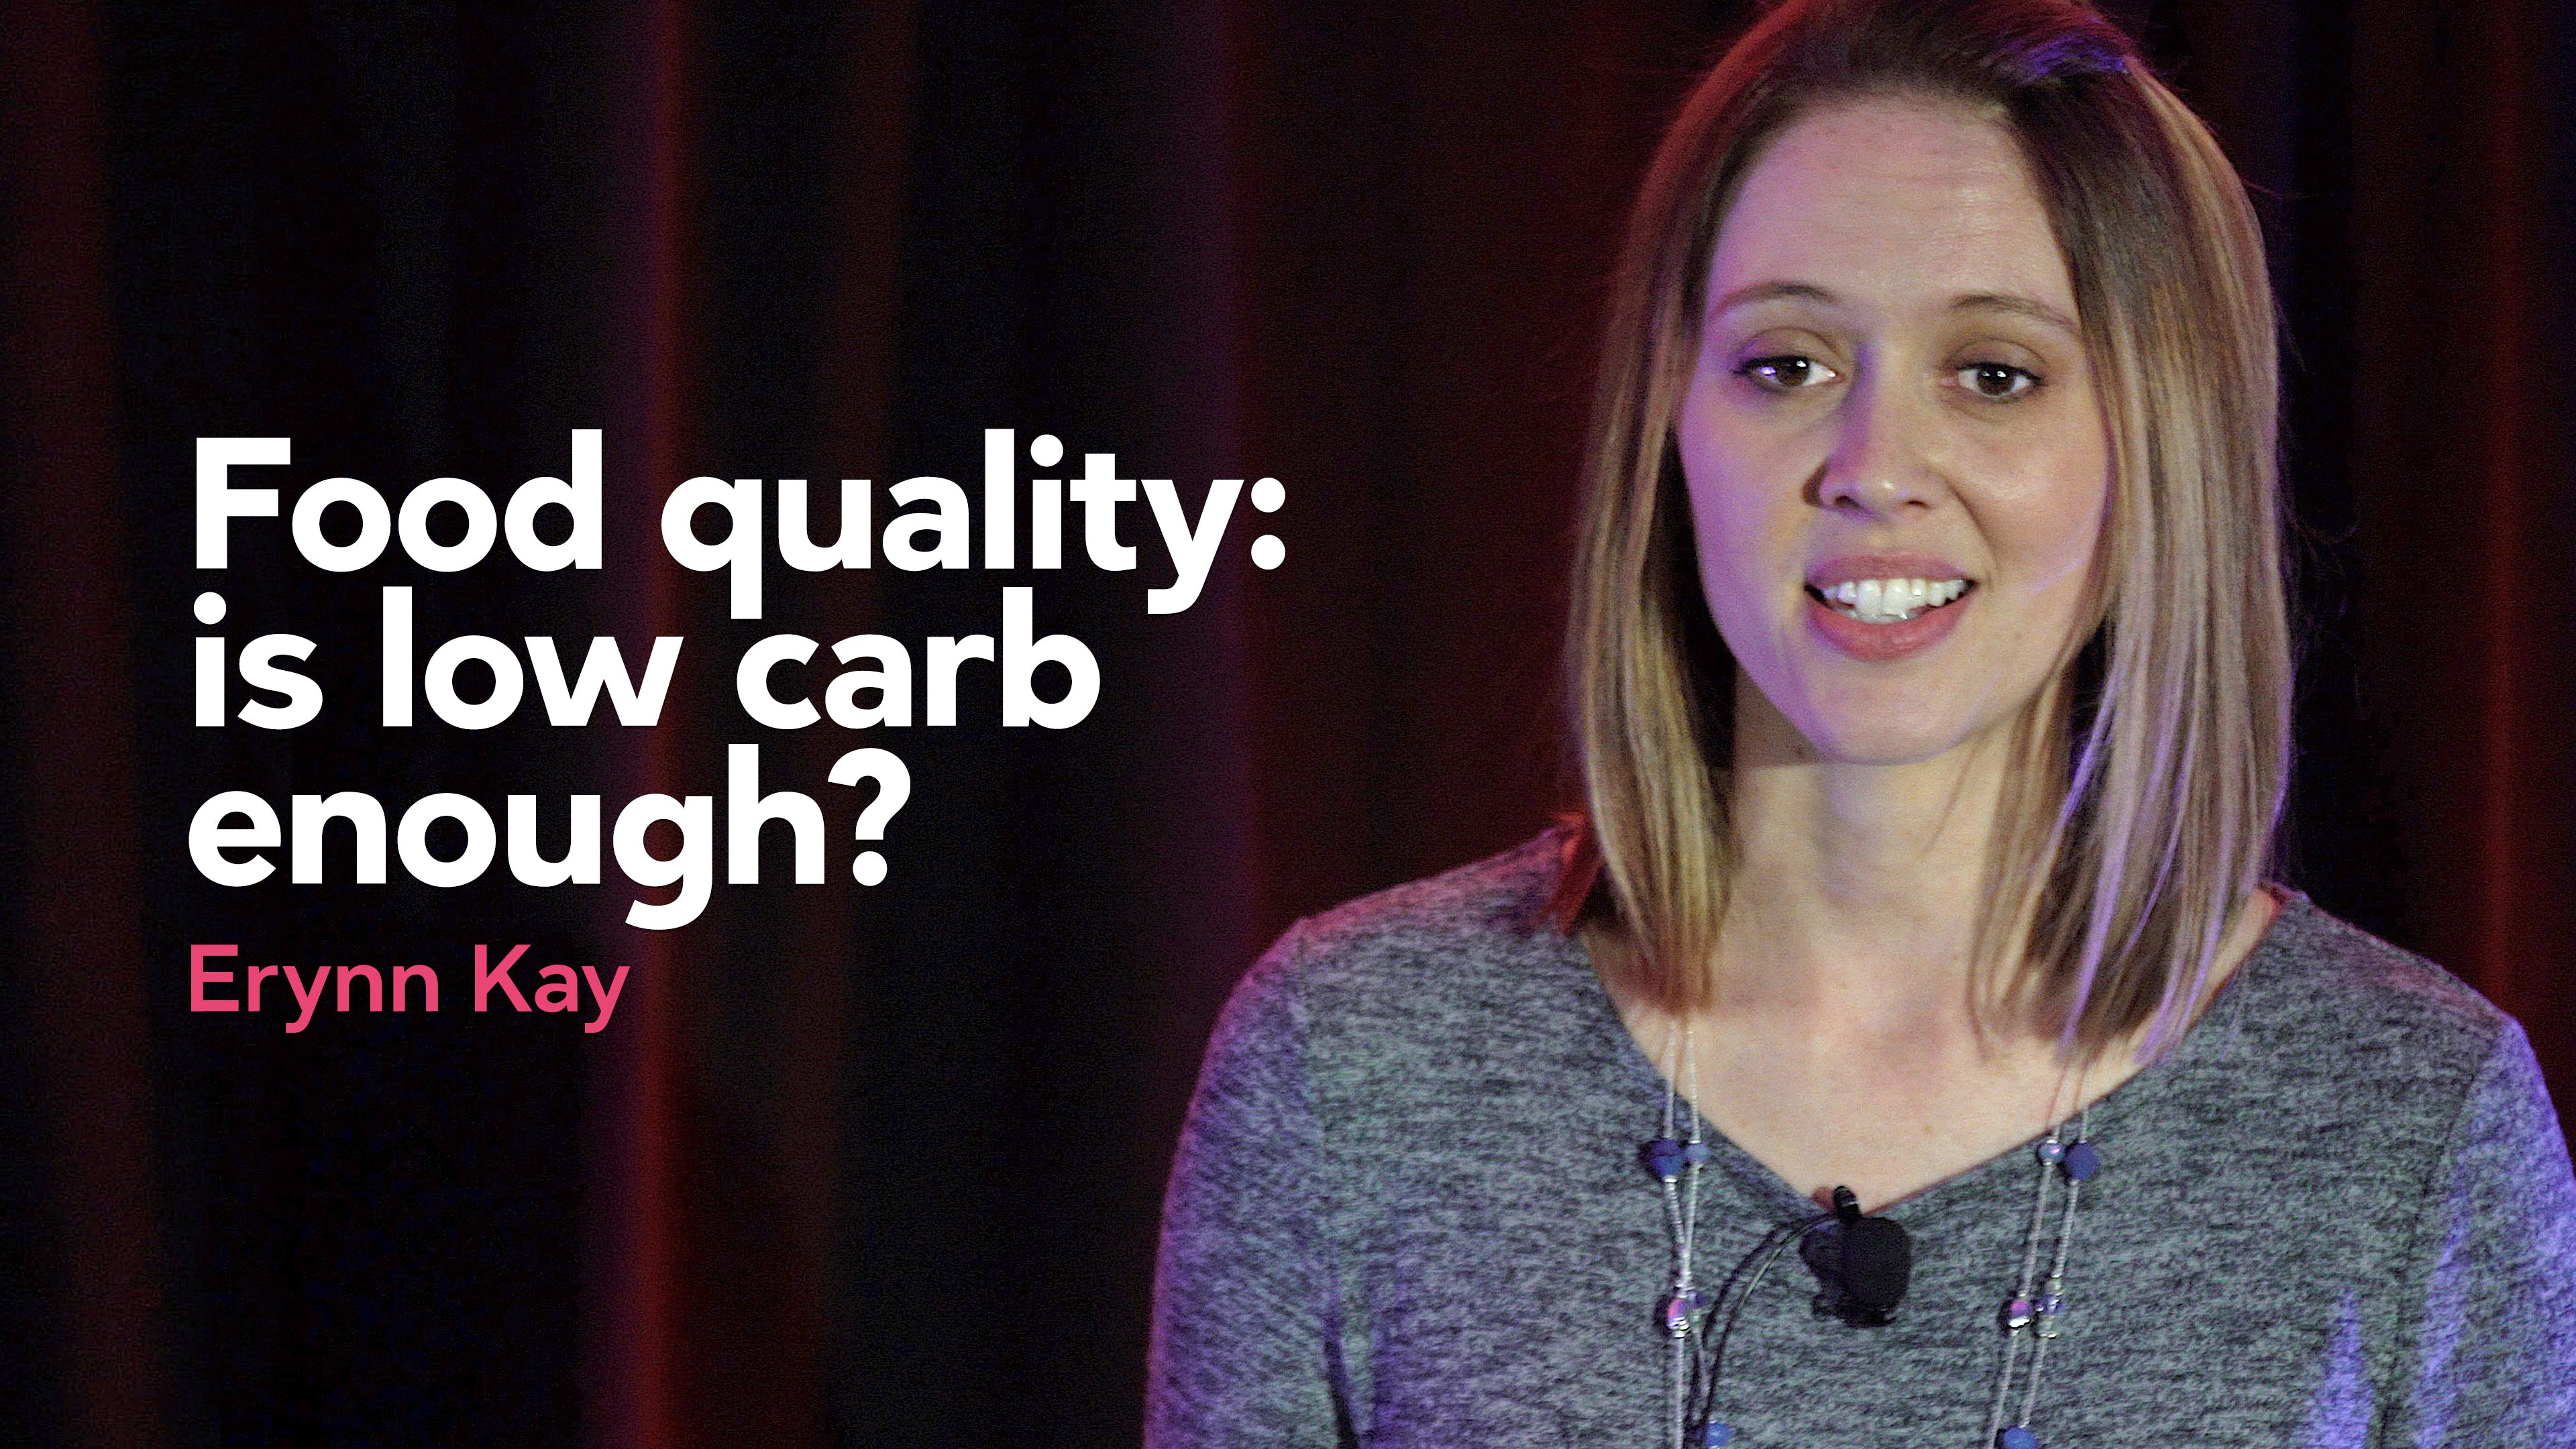 Food quality: is low carb enough?